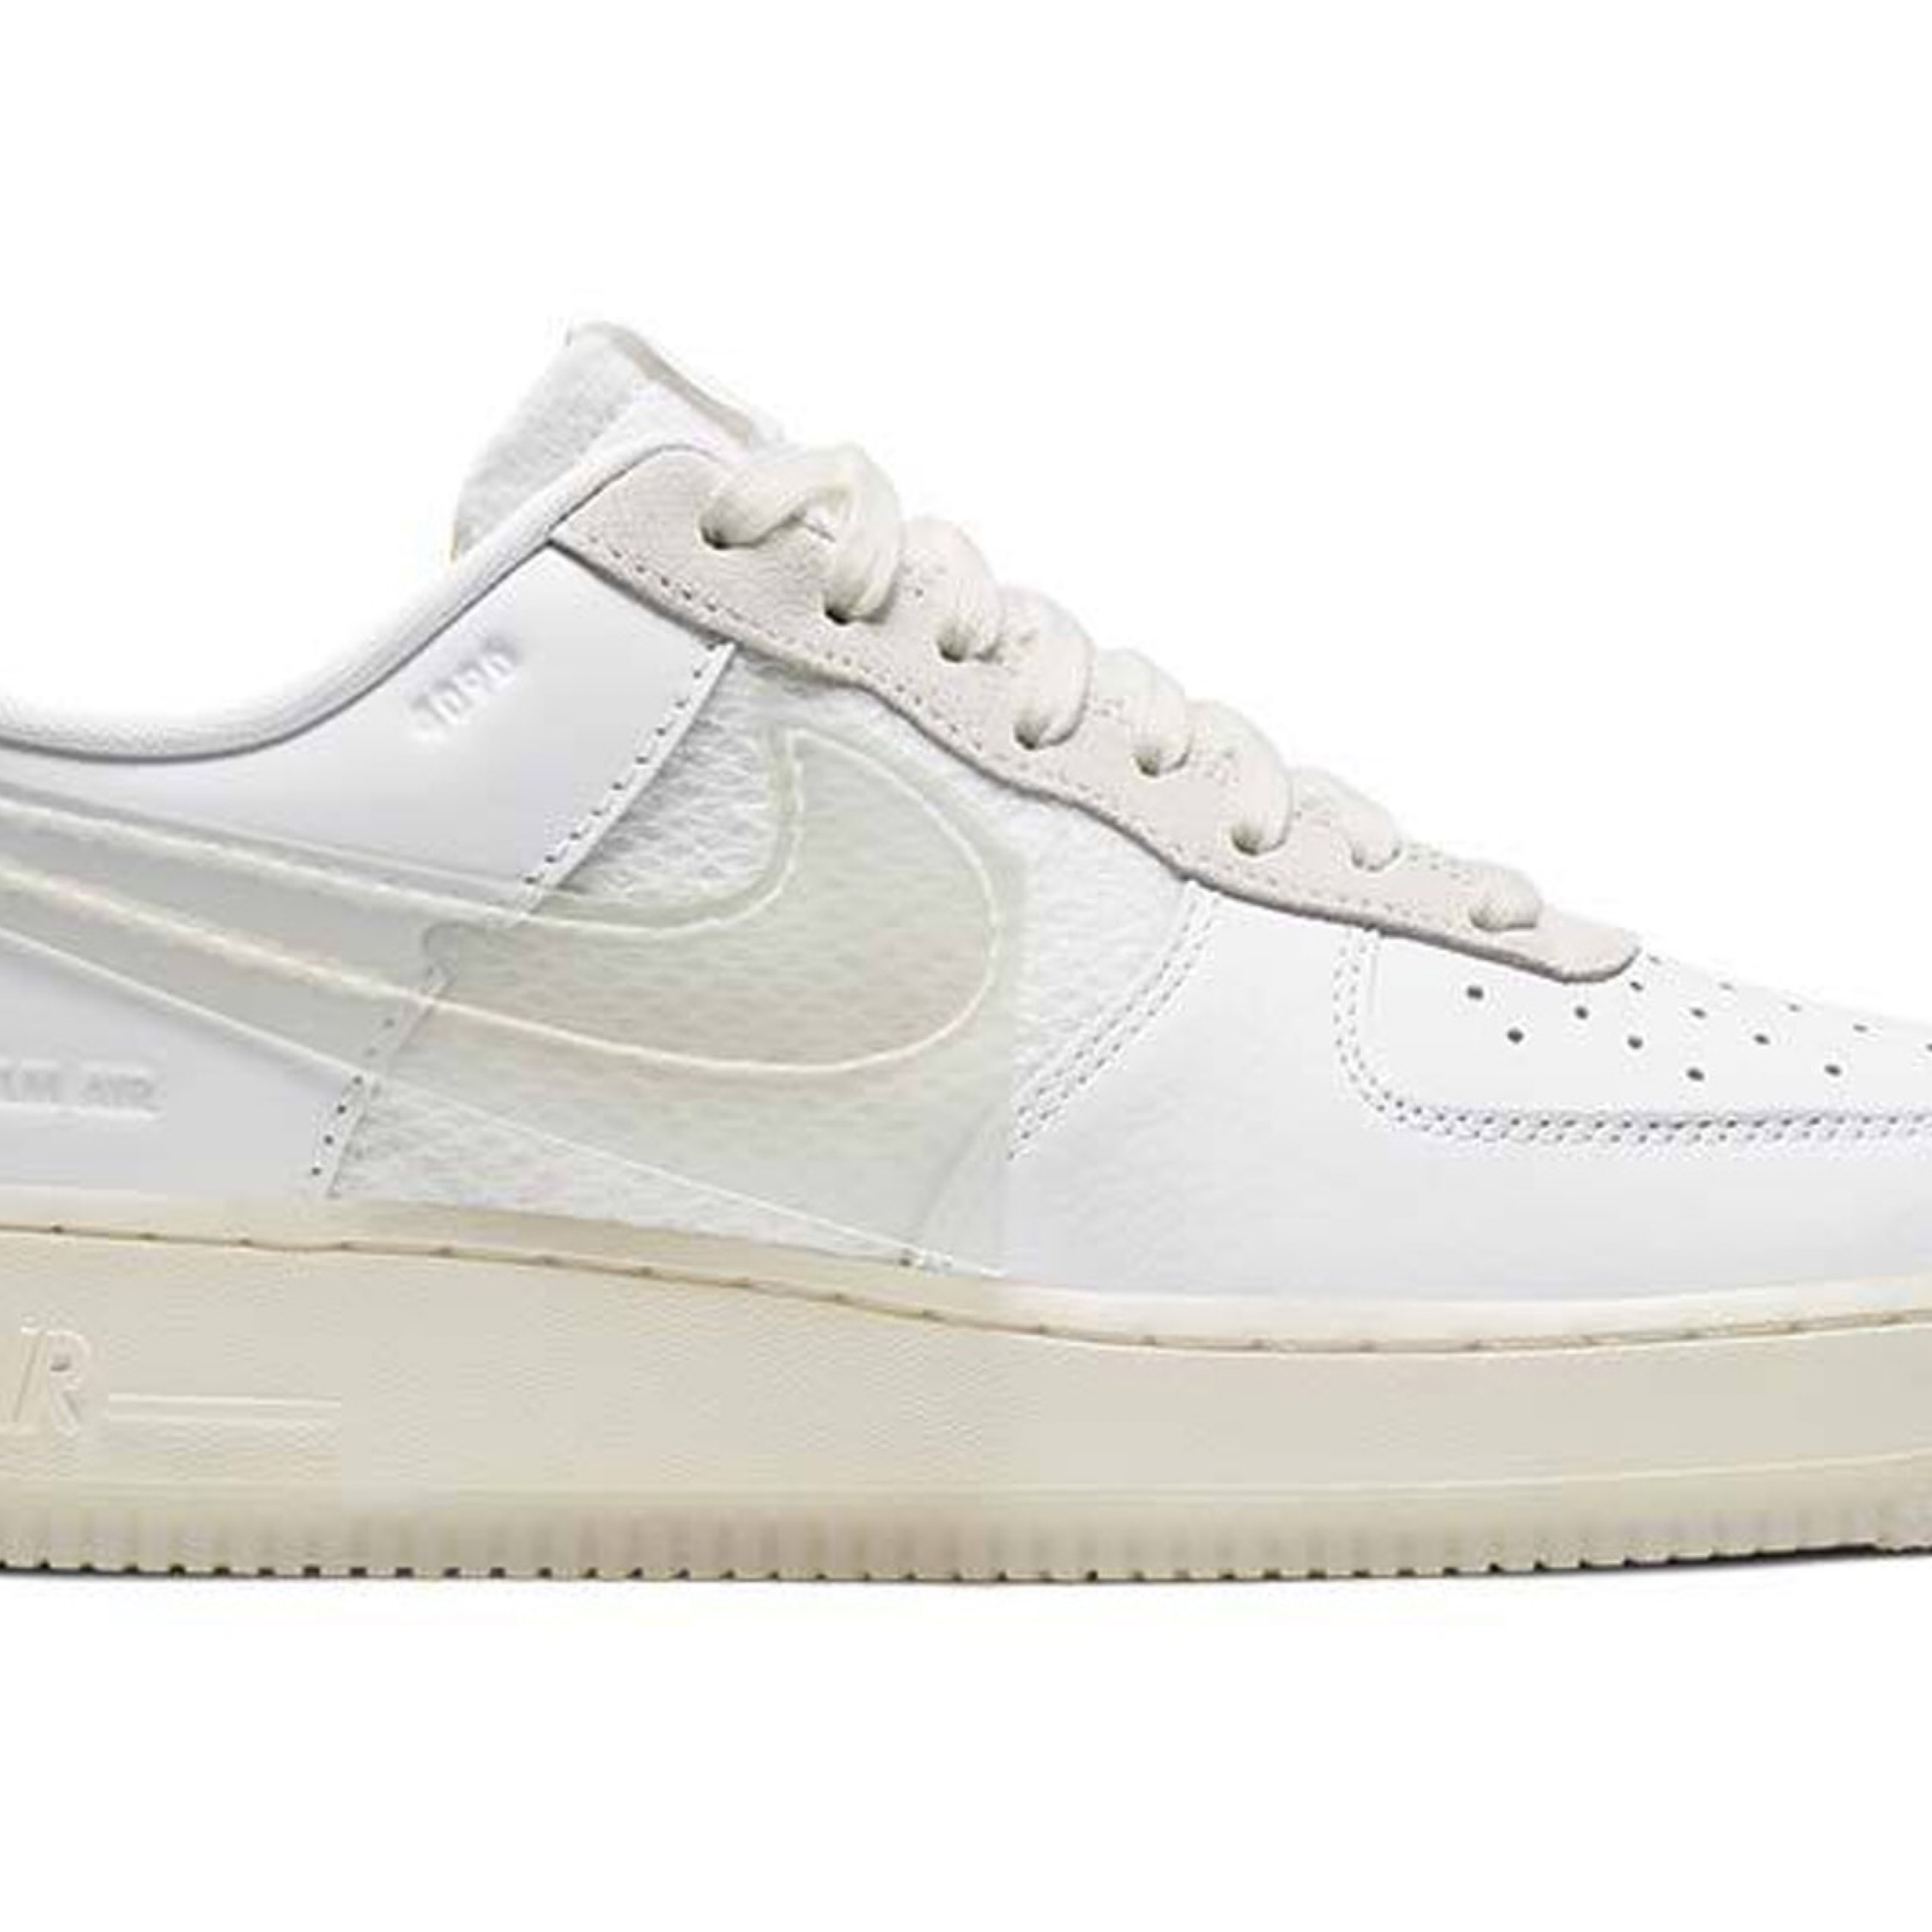 Nike Air Force 1 Lv8 Dna Dswt Size Us 8.5